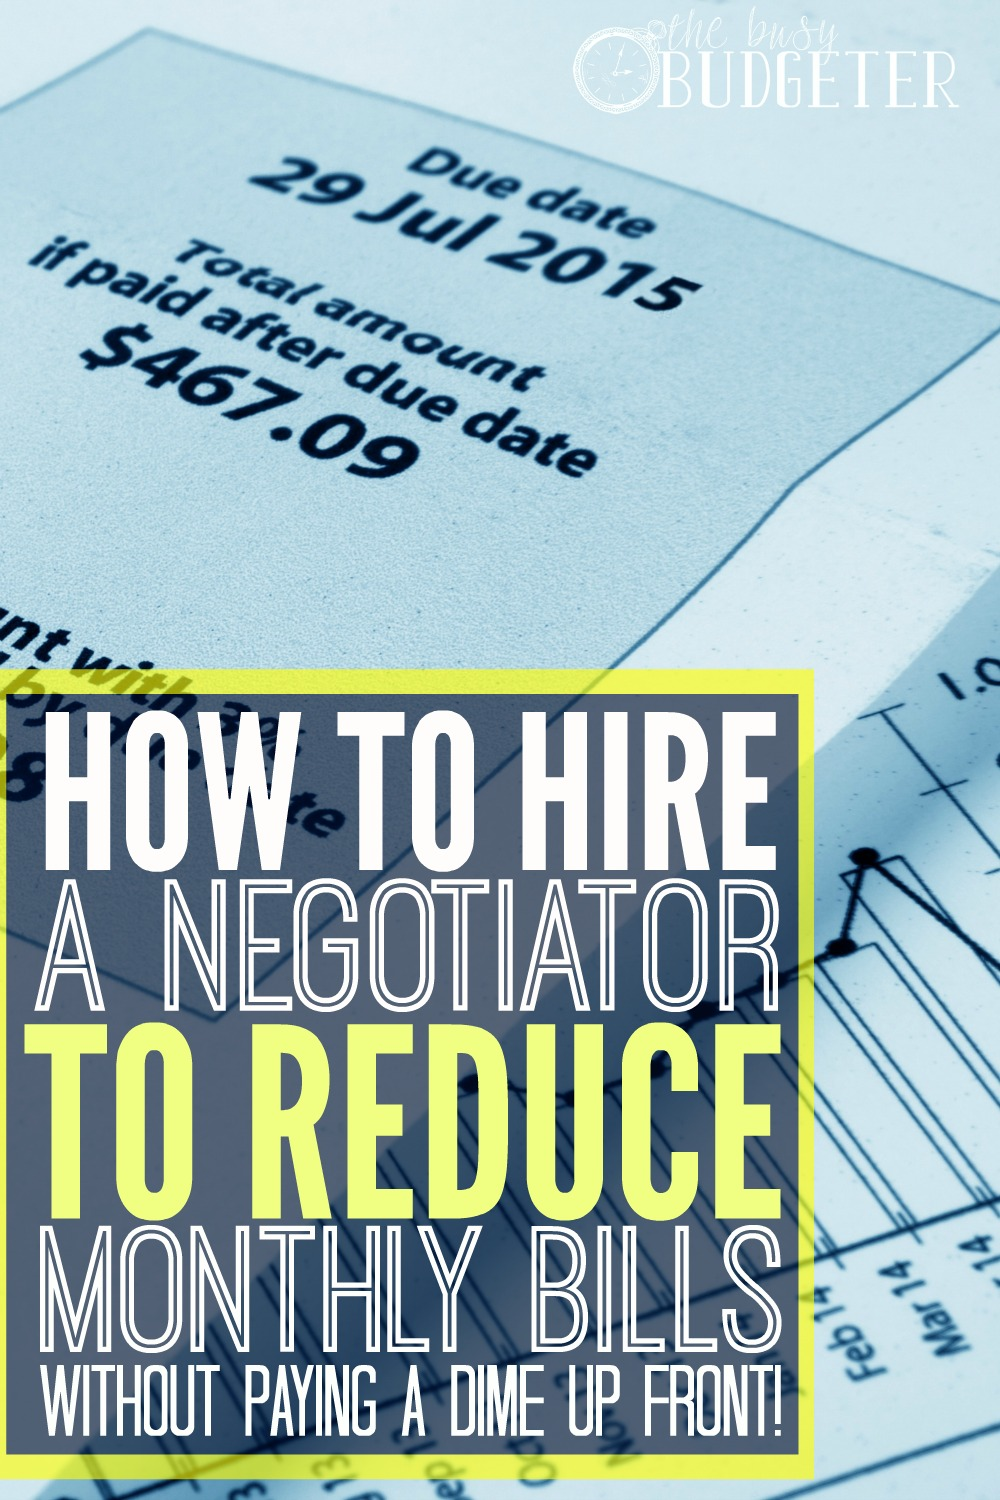 How to hire a negotiator to reduce monthly bills